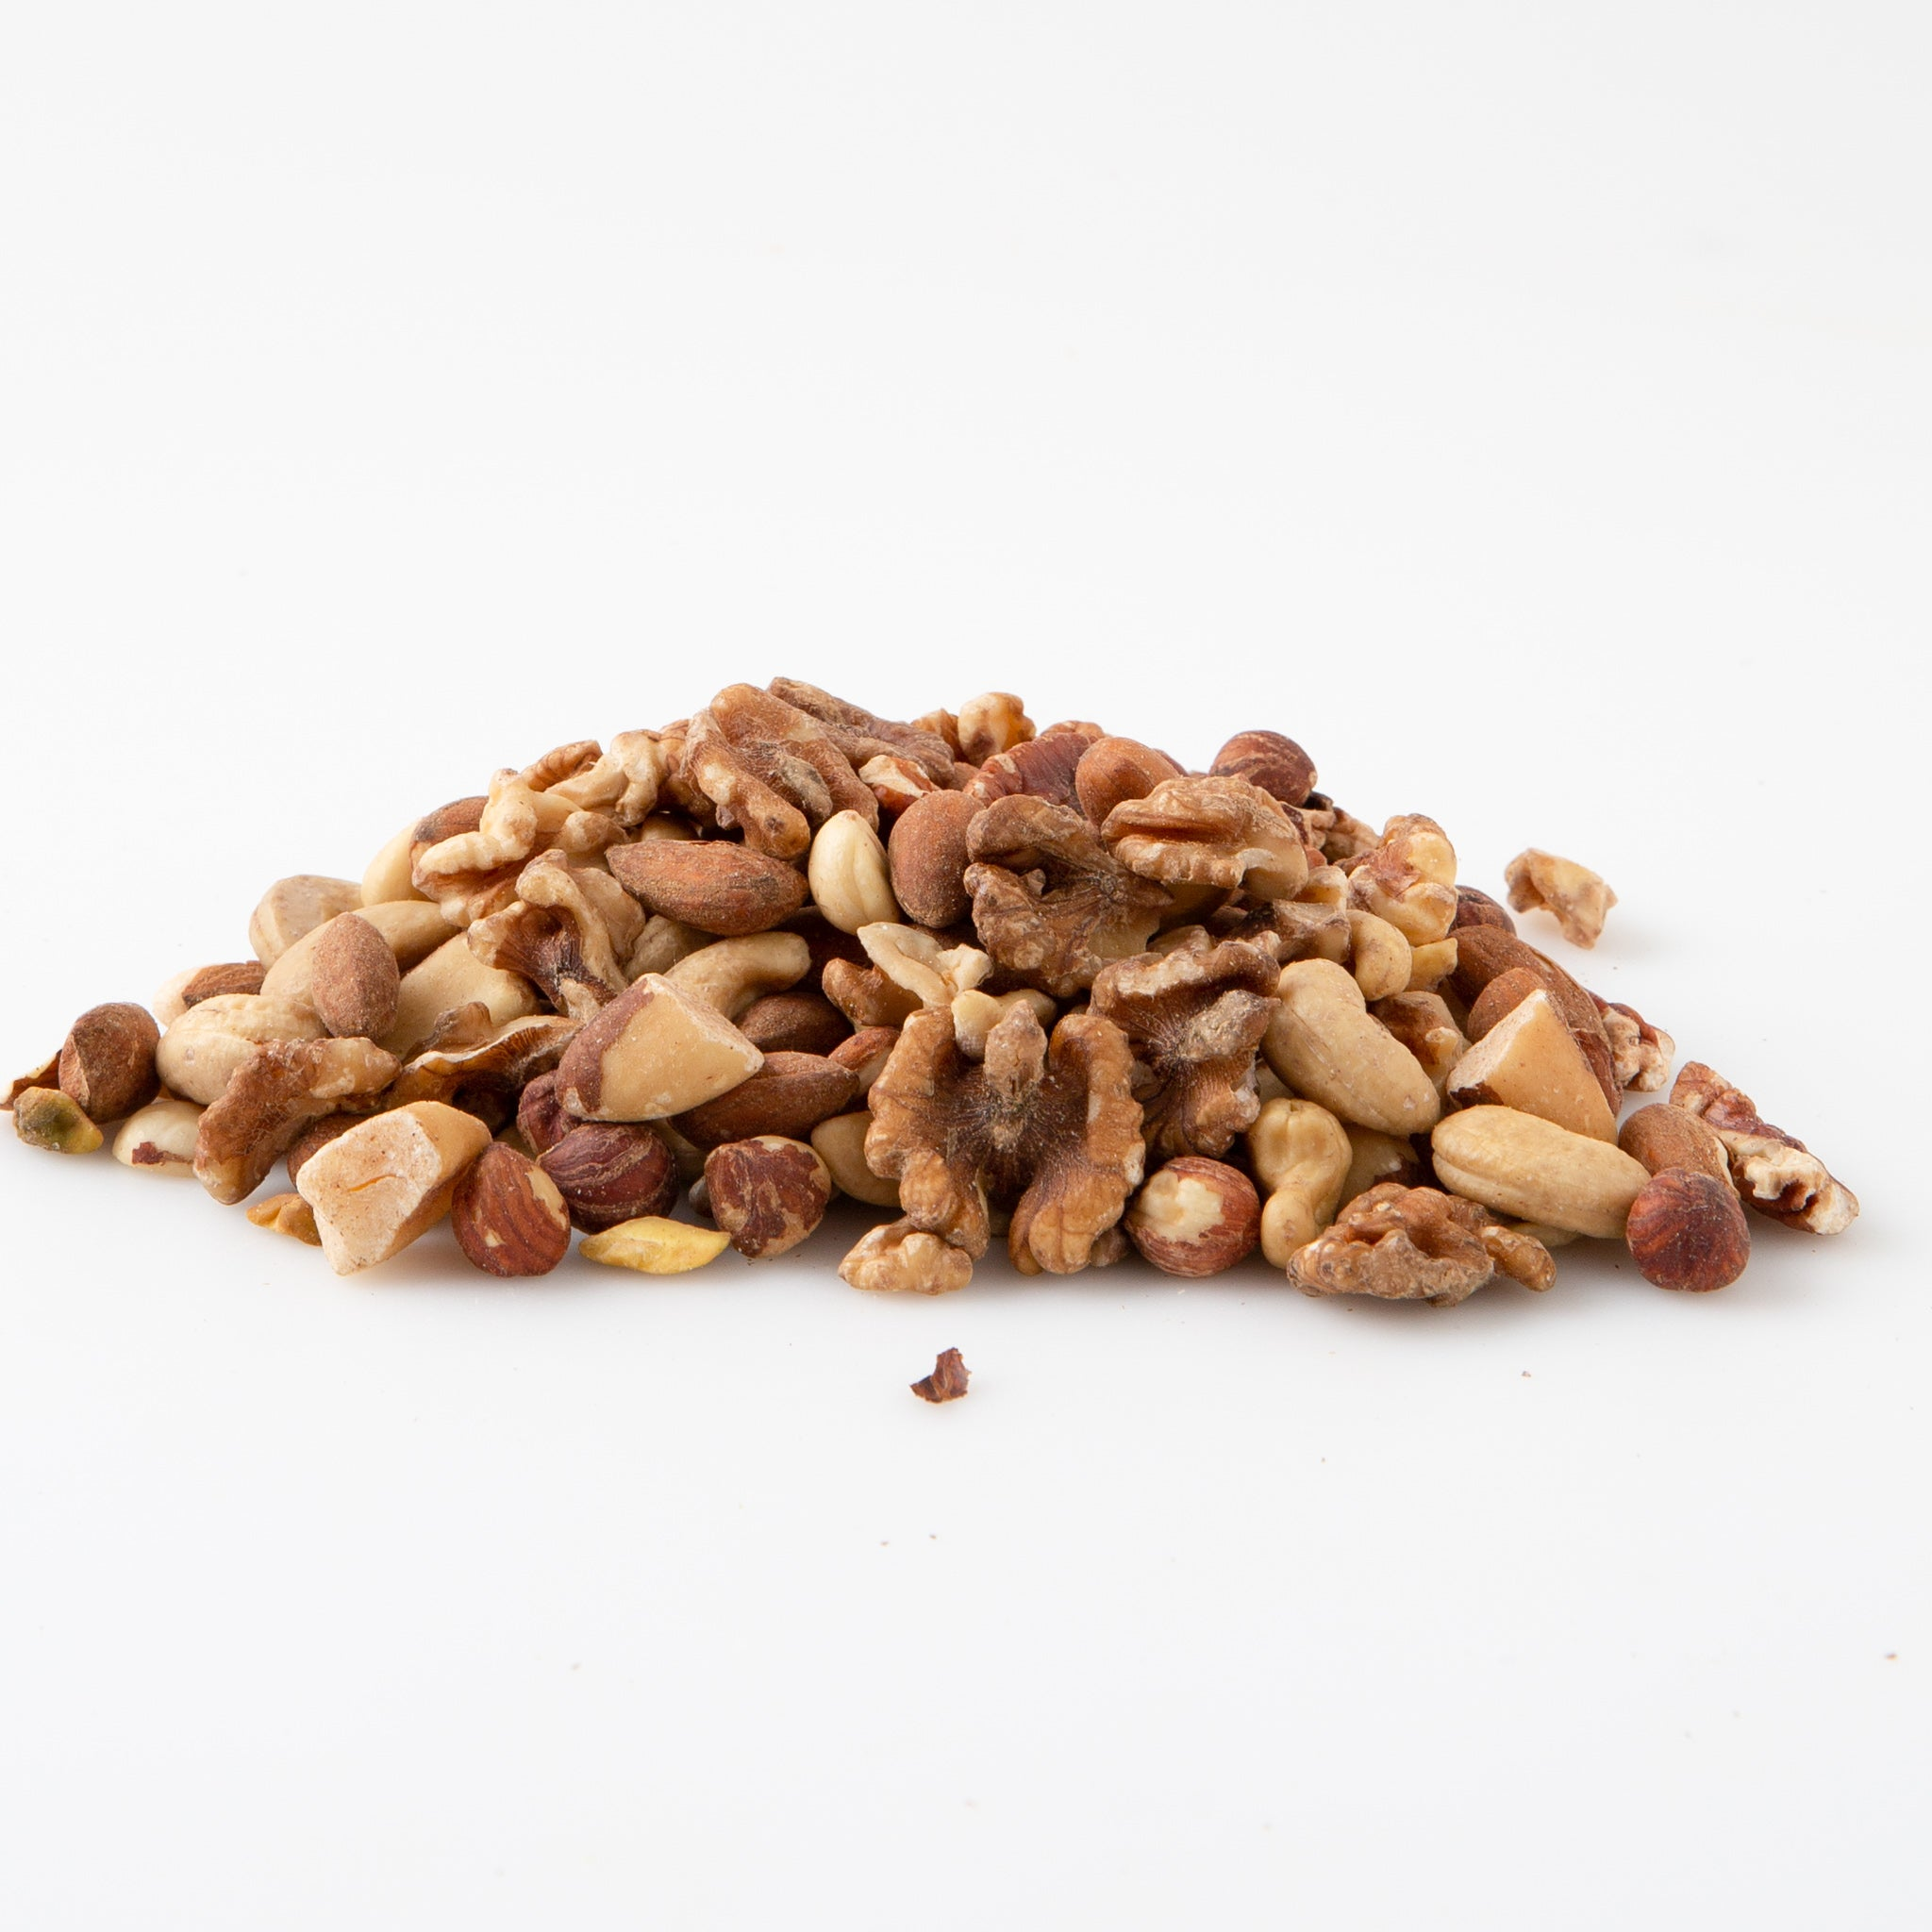 Roasted Unsalted Nut Mix - No Peanuts